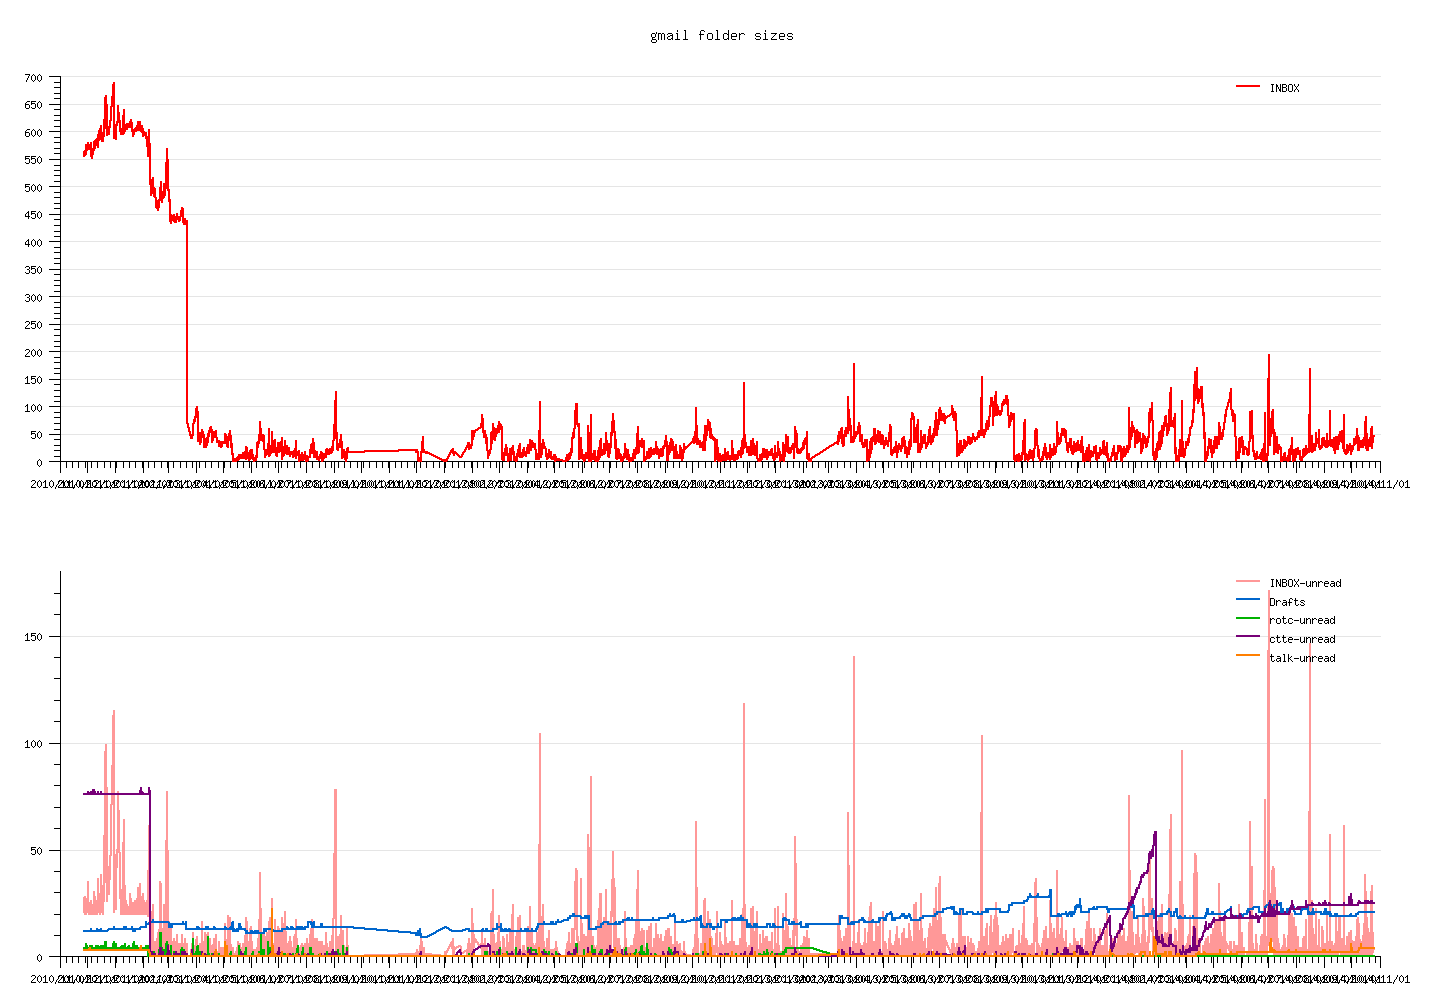 sample graph of gmail inbox size over time